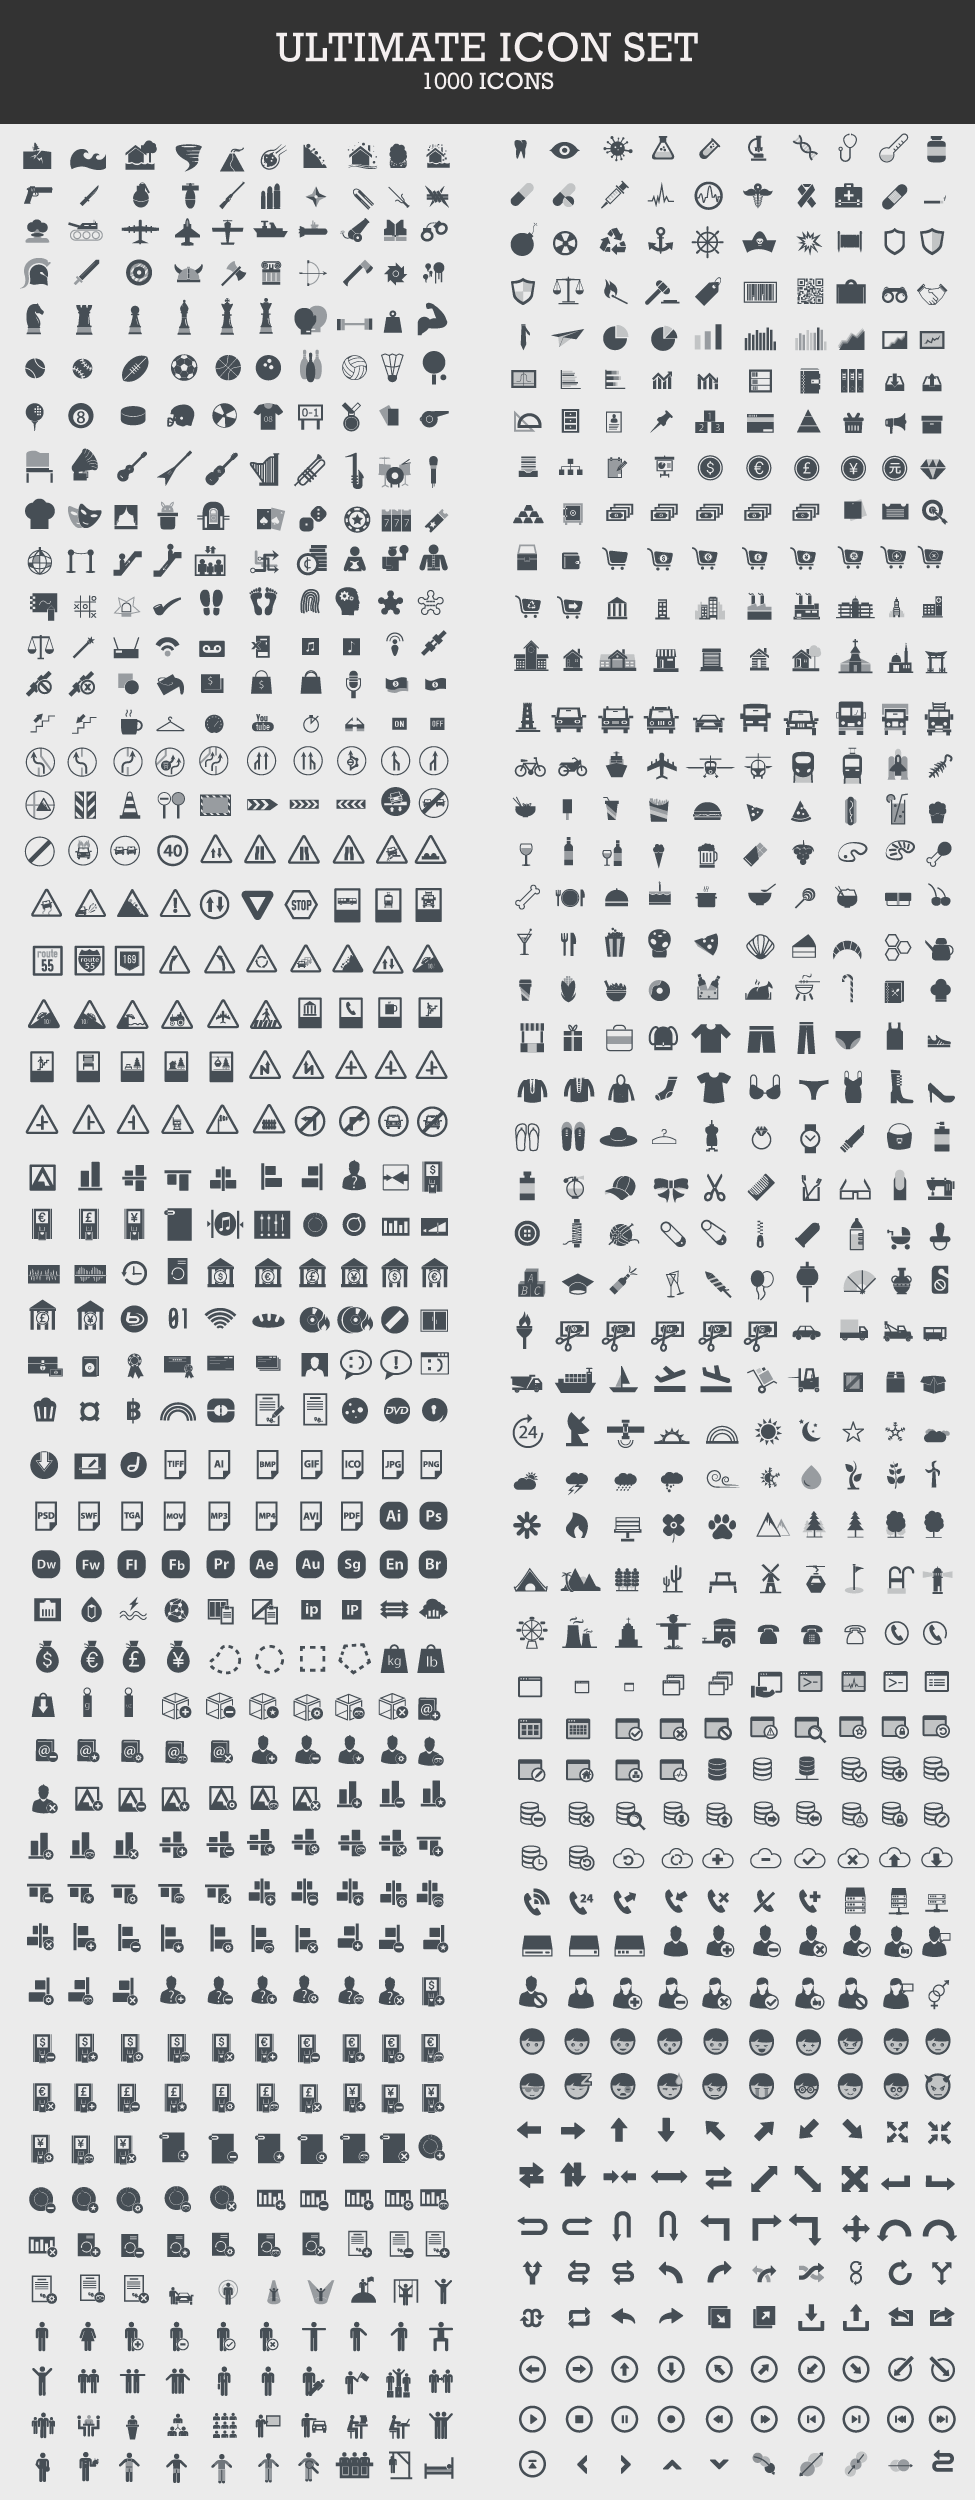 Ultimate Icon Set of 1000 Vector Icons